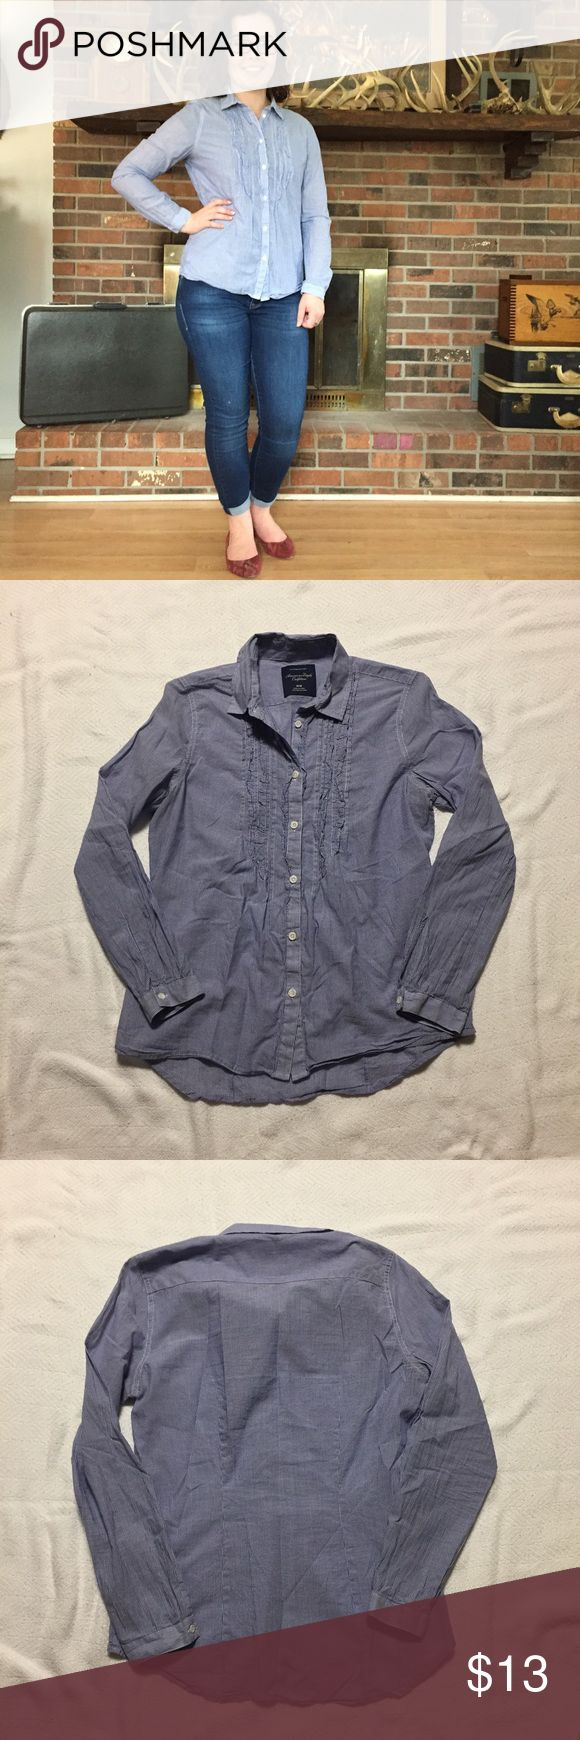 American Eagle favorite fit ruffle button down. American Eagle favorite fit ruffle button down. Blue and white vertical stripes. Wear with a cardigan and jeans for a casual look! If you would like modeled photos, just ask! Prices are firm. American Eagle Outfitters Tops Button Down Shirts